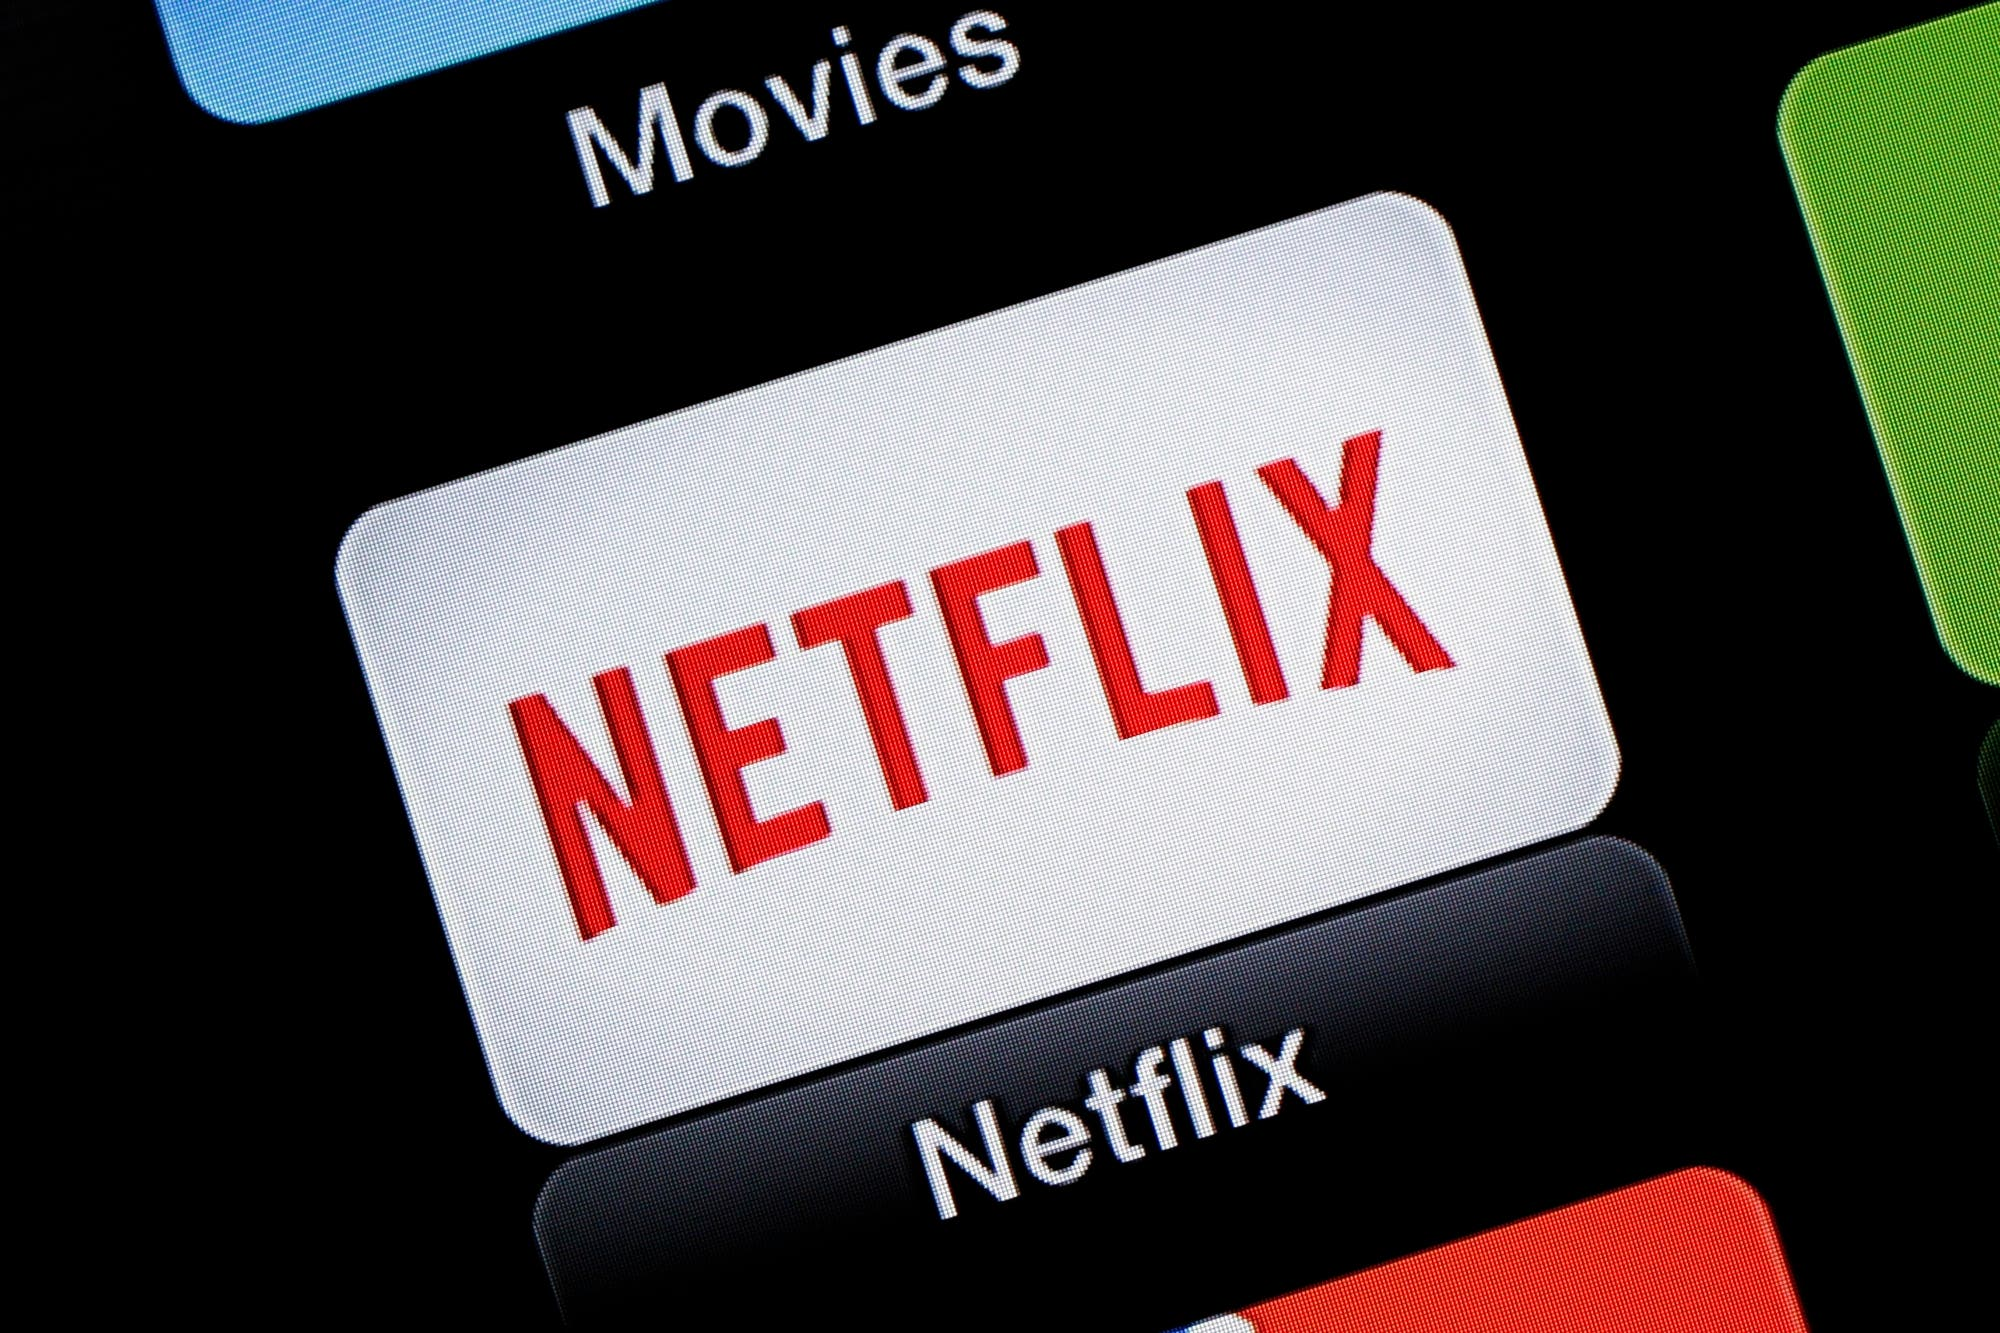 Netflix reduce streaming quality in Europe for a month so as not to affect broadband connections